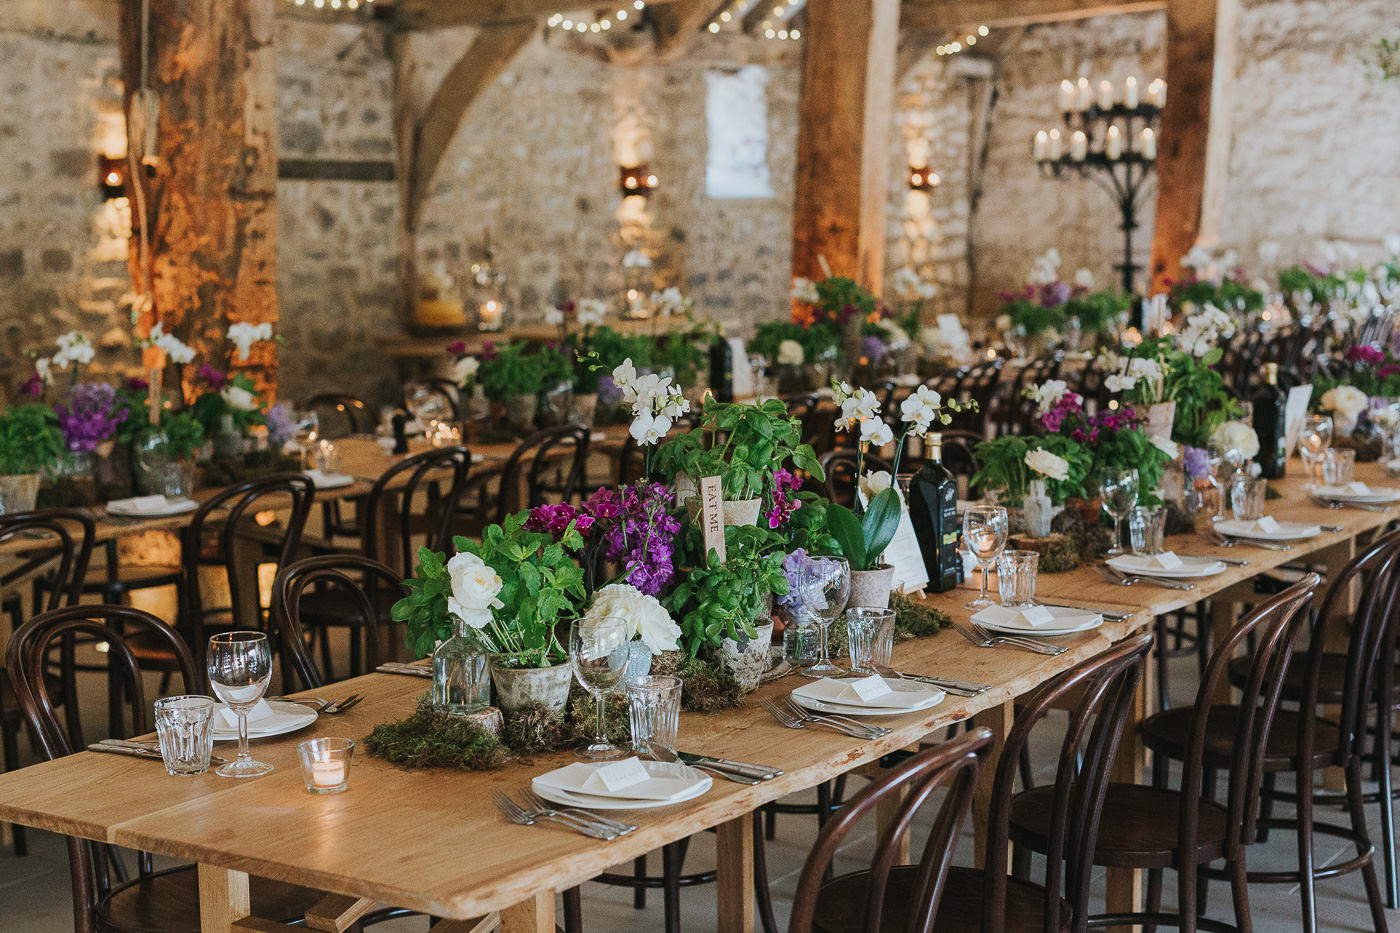 Tithe Barn - Laura Calderwood Photography -25.08.2018- Steph & Robin-223-1.jpg